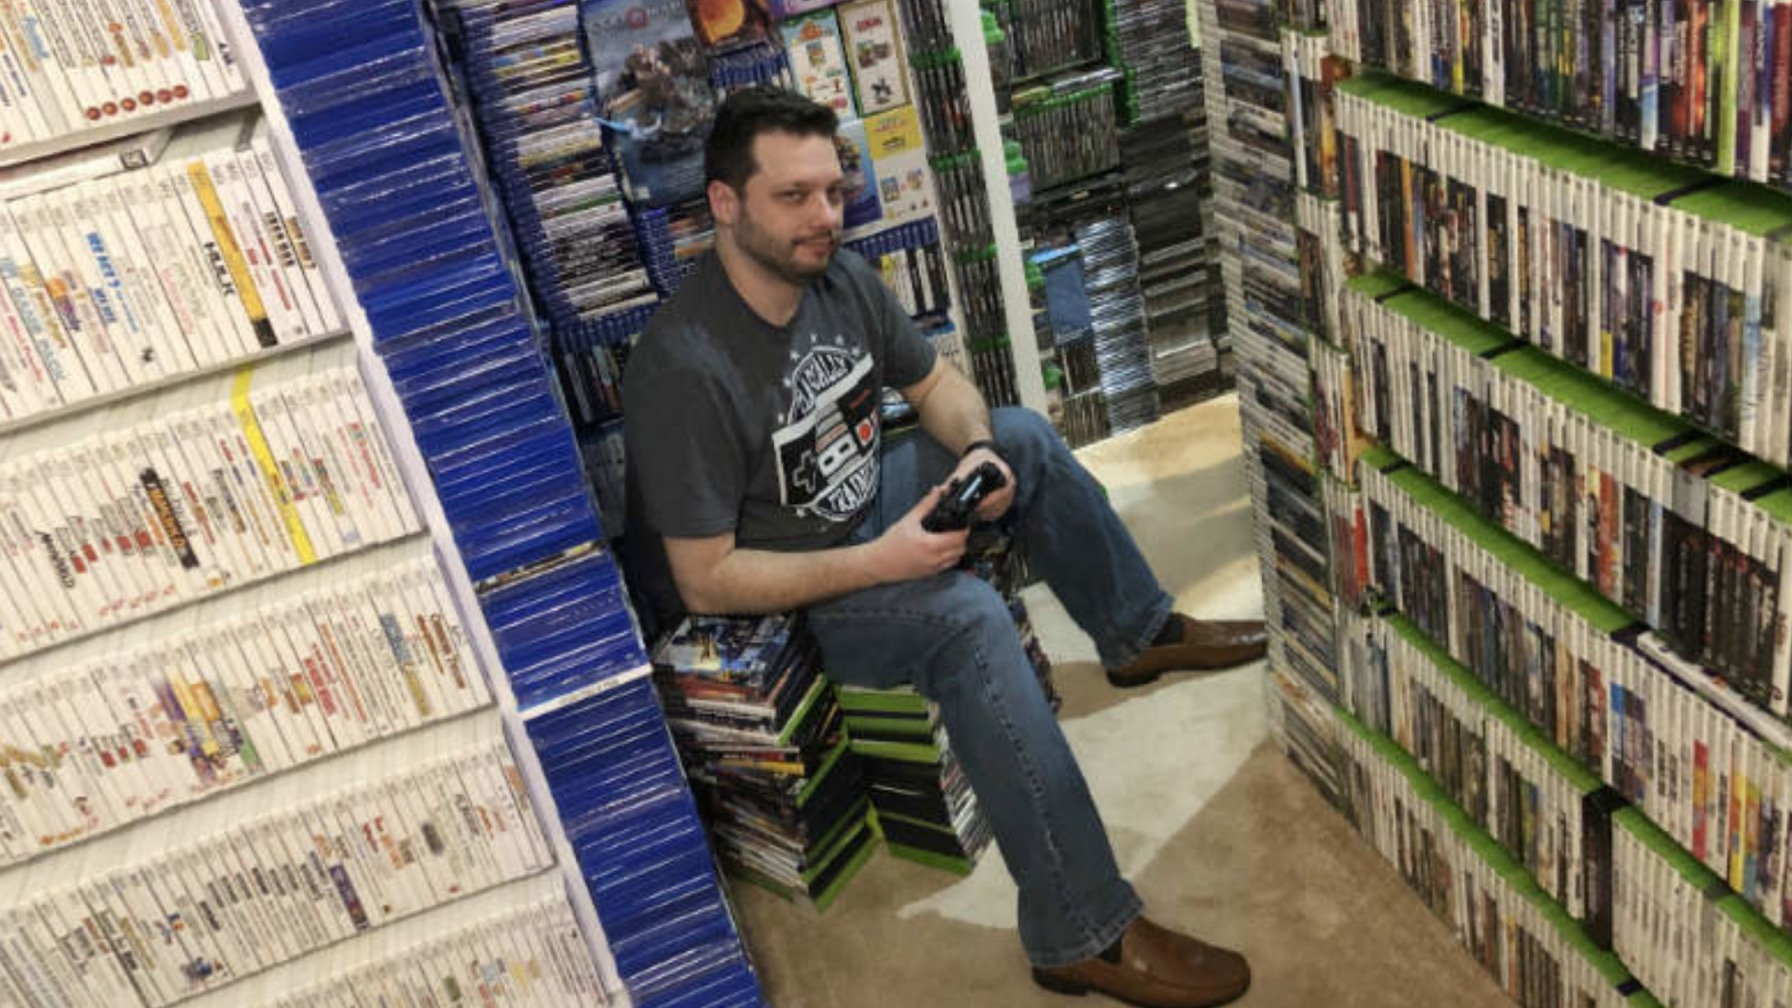 Guinness Record for Largest Video Game Collection Took 8 Days to Count